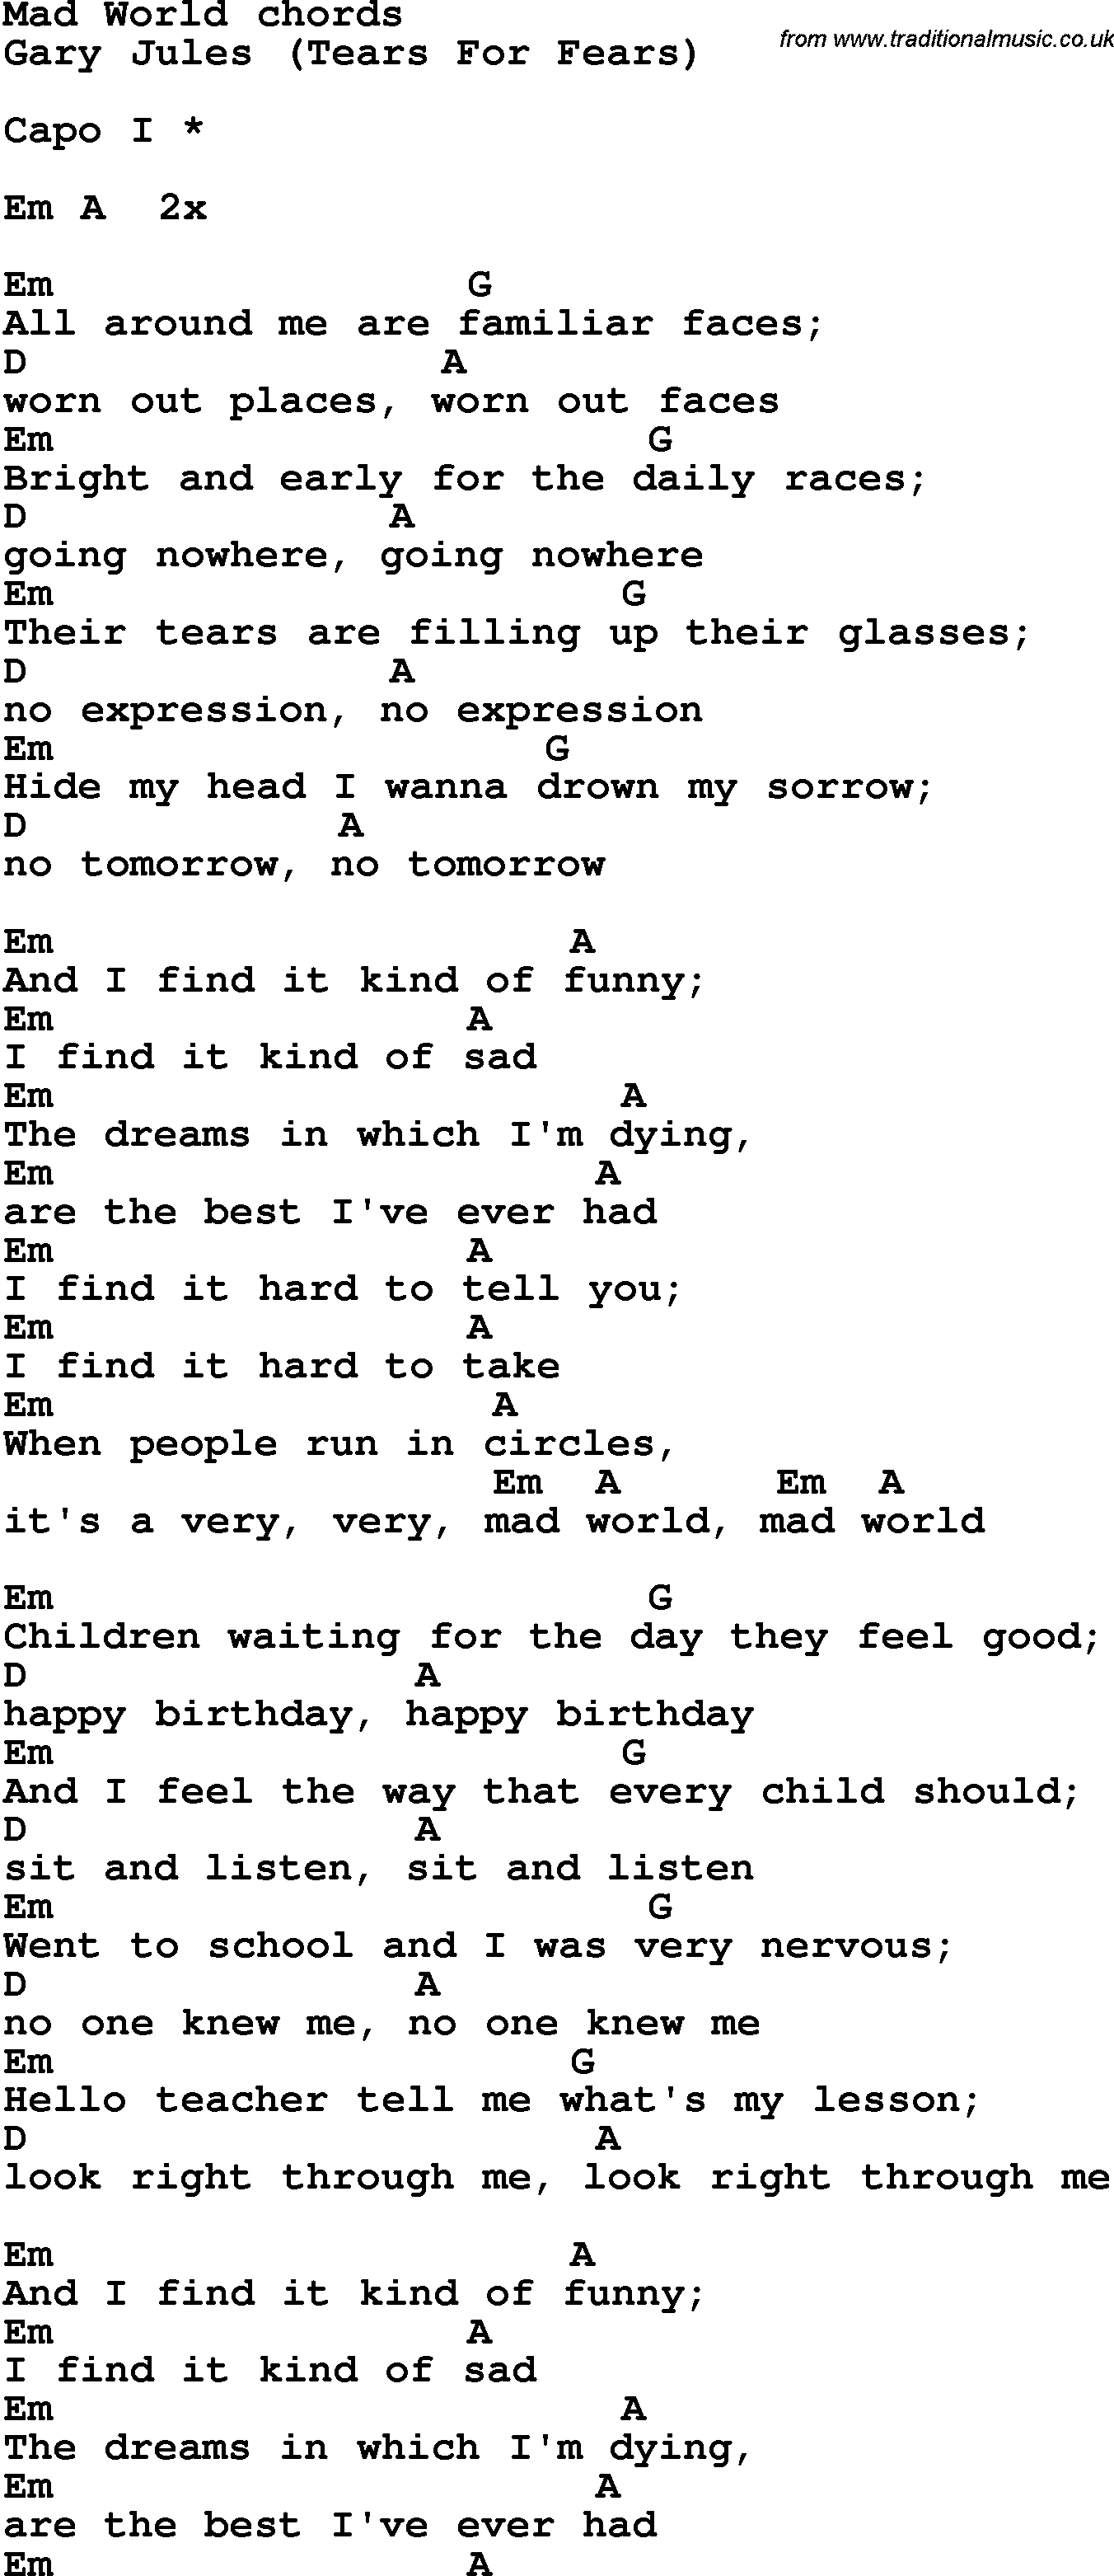 Mad World Chords Song Lyrics With Guitar Chords For Mad World